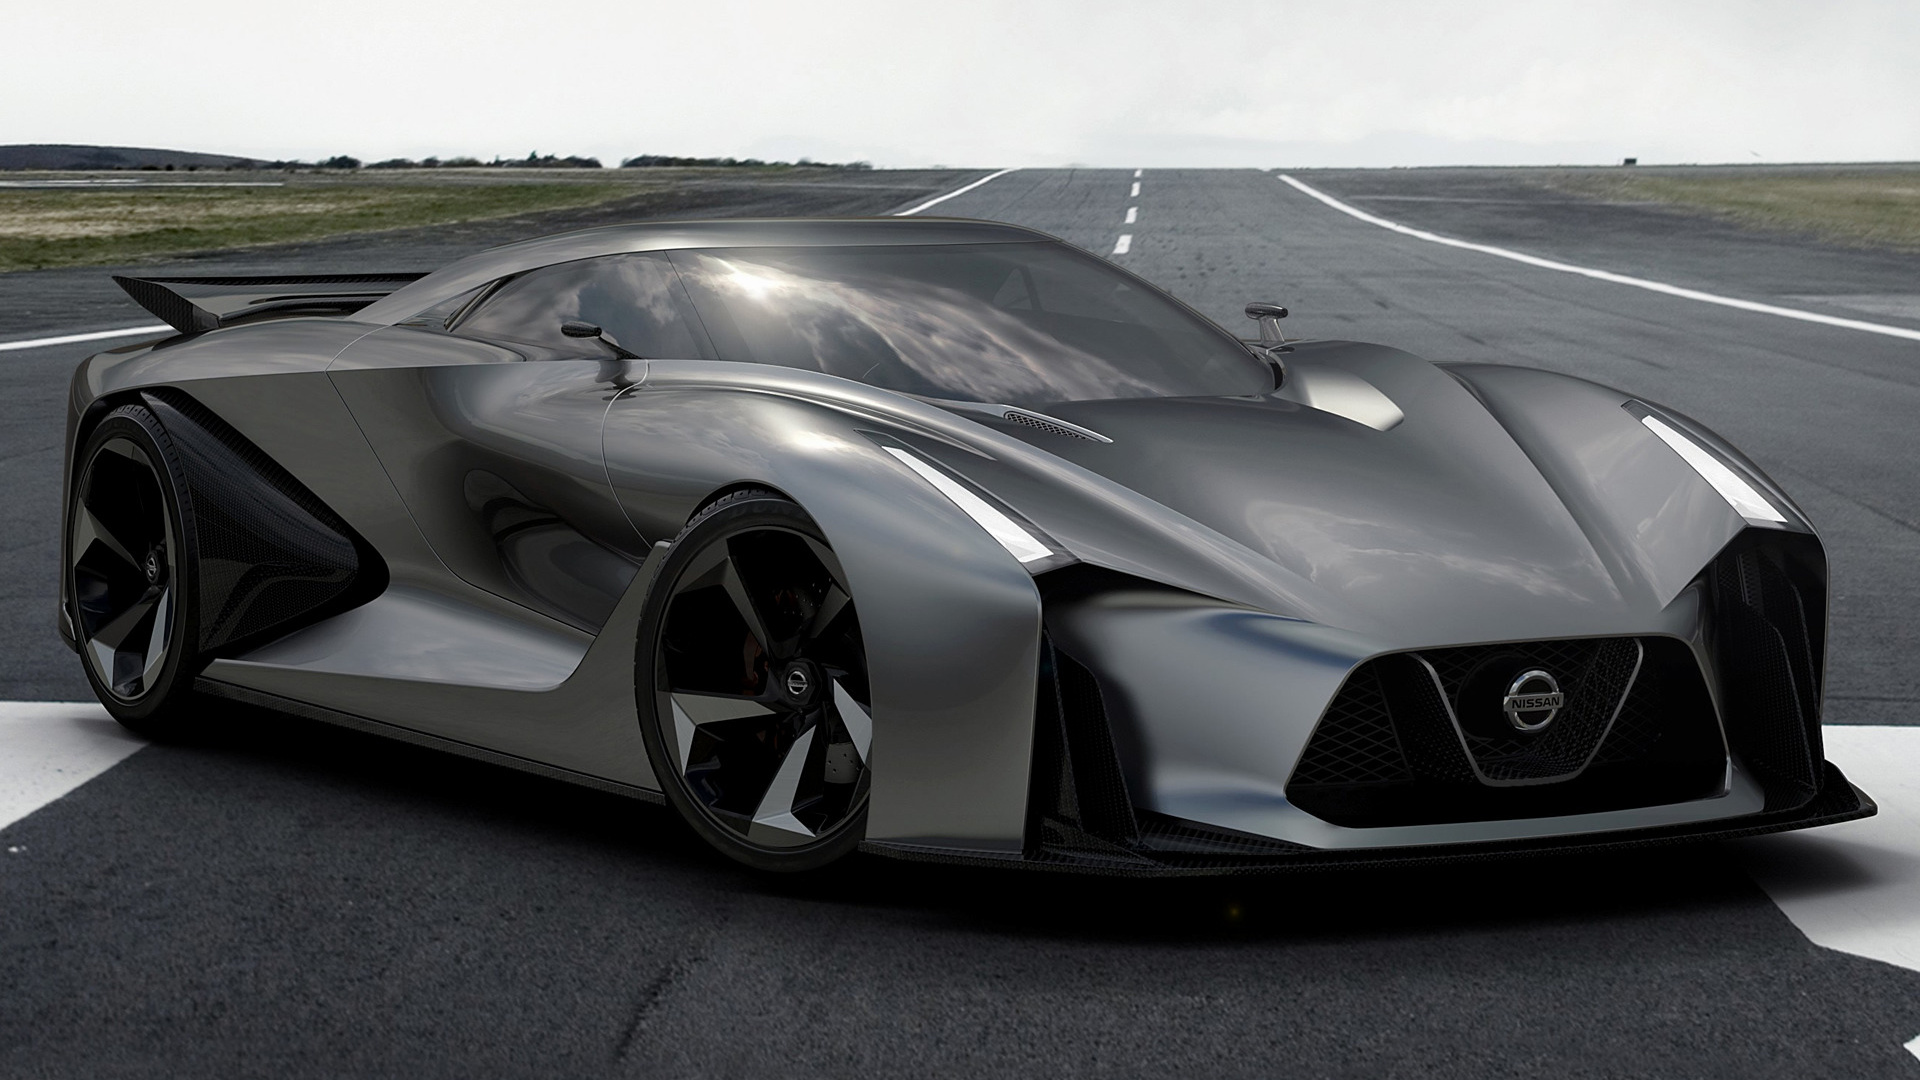 2014 Nissan Concept 2020 Vision Gran Turismo - Wallpapers and HD Images | Car Pixel